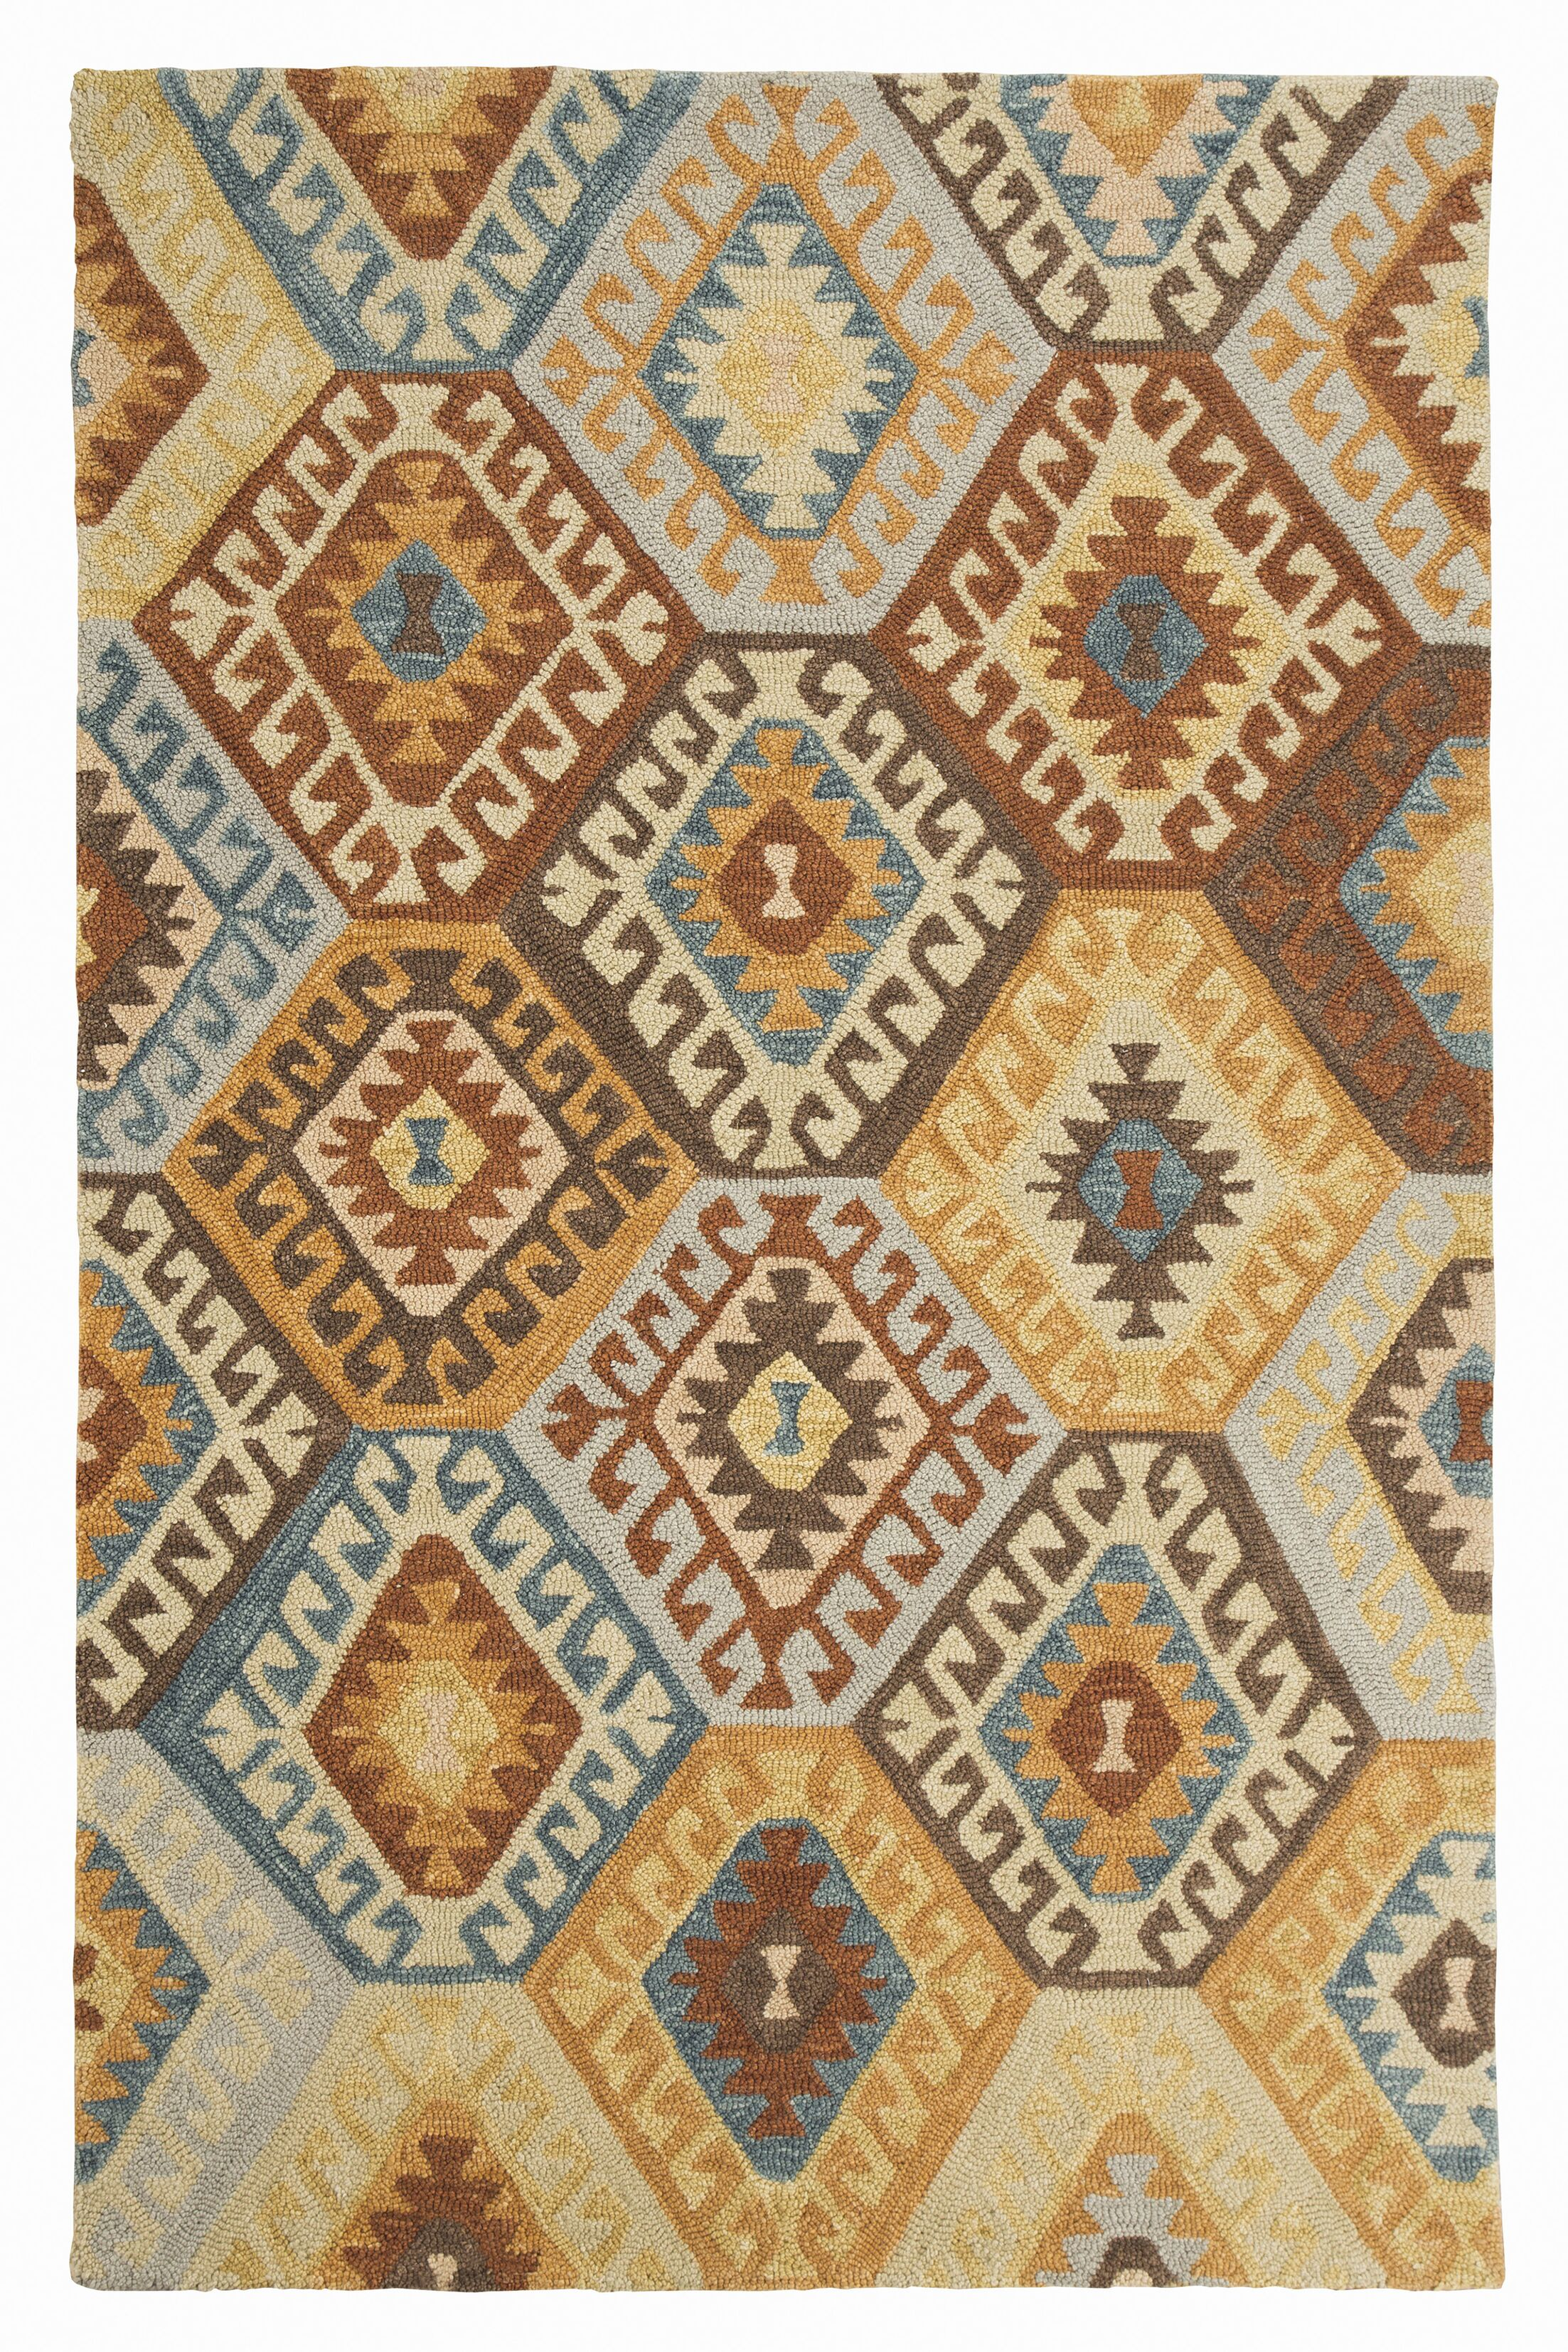 Pinchot Hand-Tufted Wool Blue/Brown Area Rug Rug Size: 5' x 8'